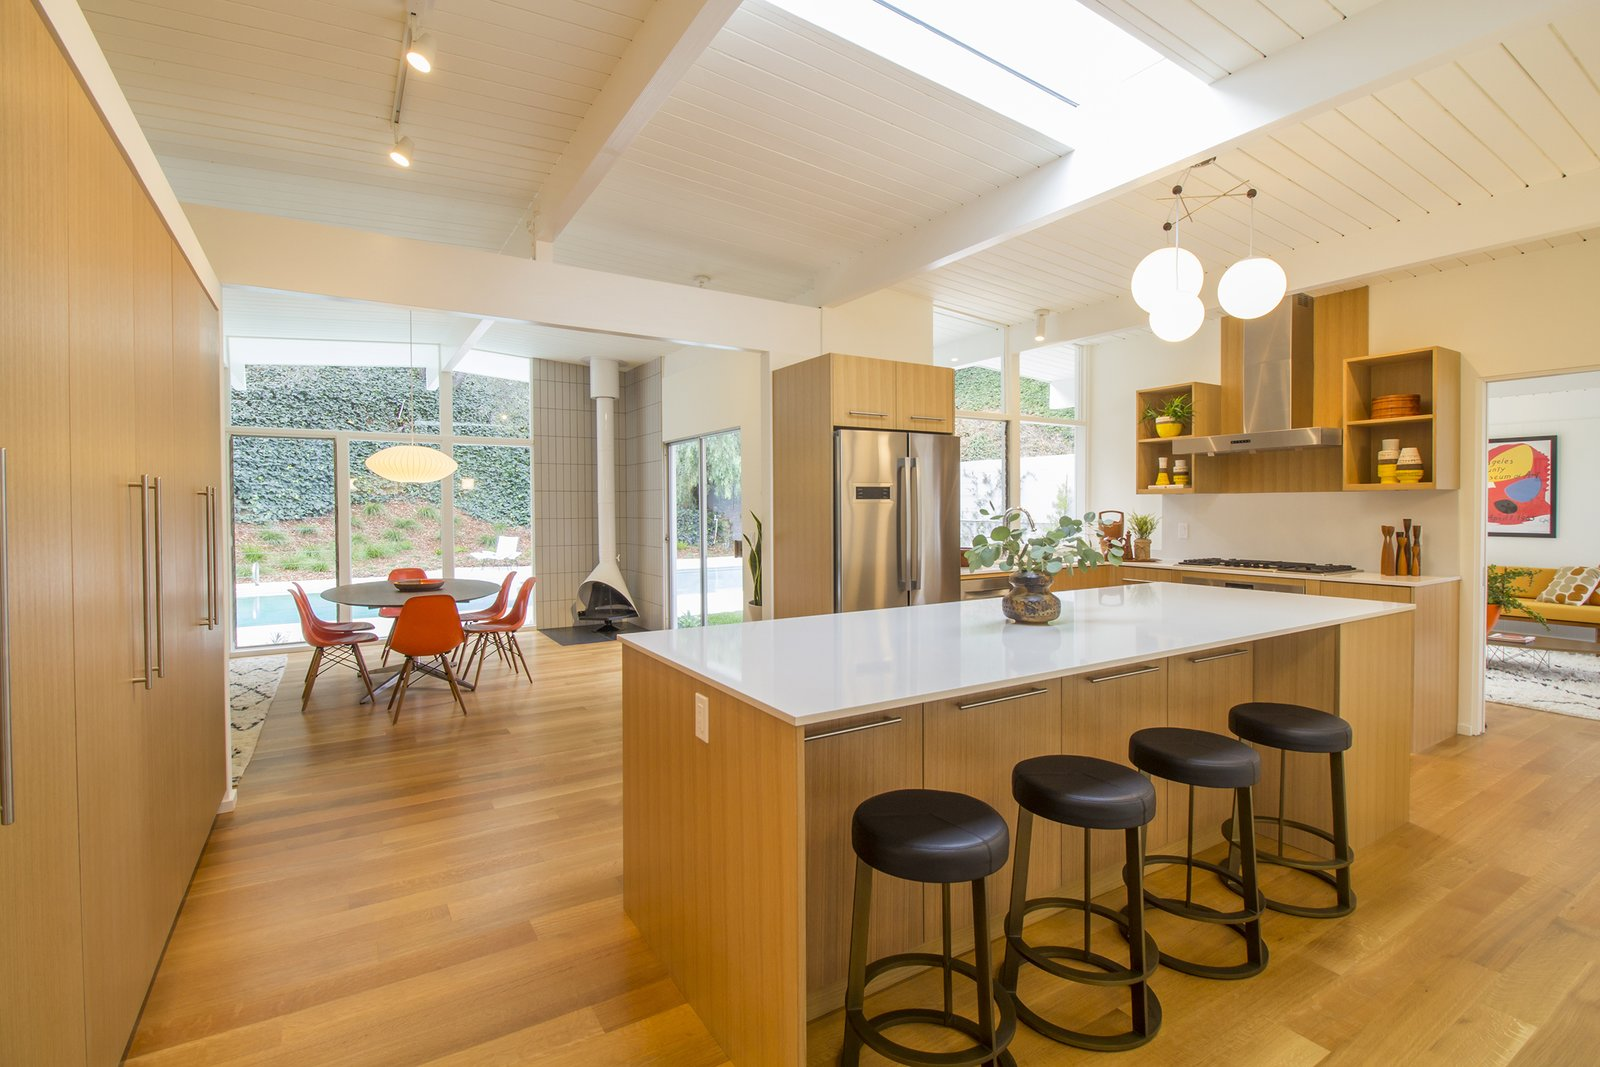 Kitchen, Quartzite, Wood, Pendant, Medium Hardwood, Track, Range, Open, Refrigerator, and Range Hood The remodelled kitchen.  Best Kitchen Wood Quartzite Range Photos from A Meticulously Updated Midcentury in L.A. Asks $1.49M